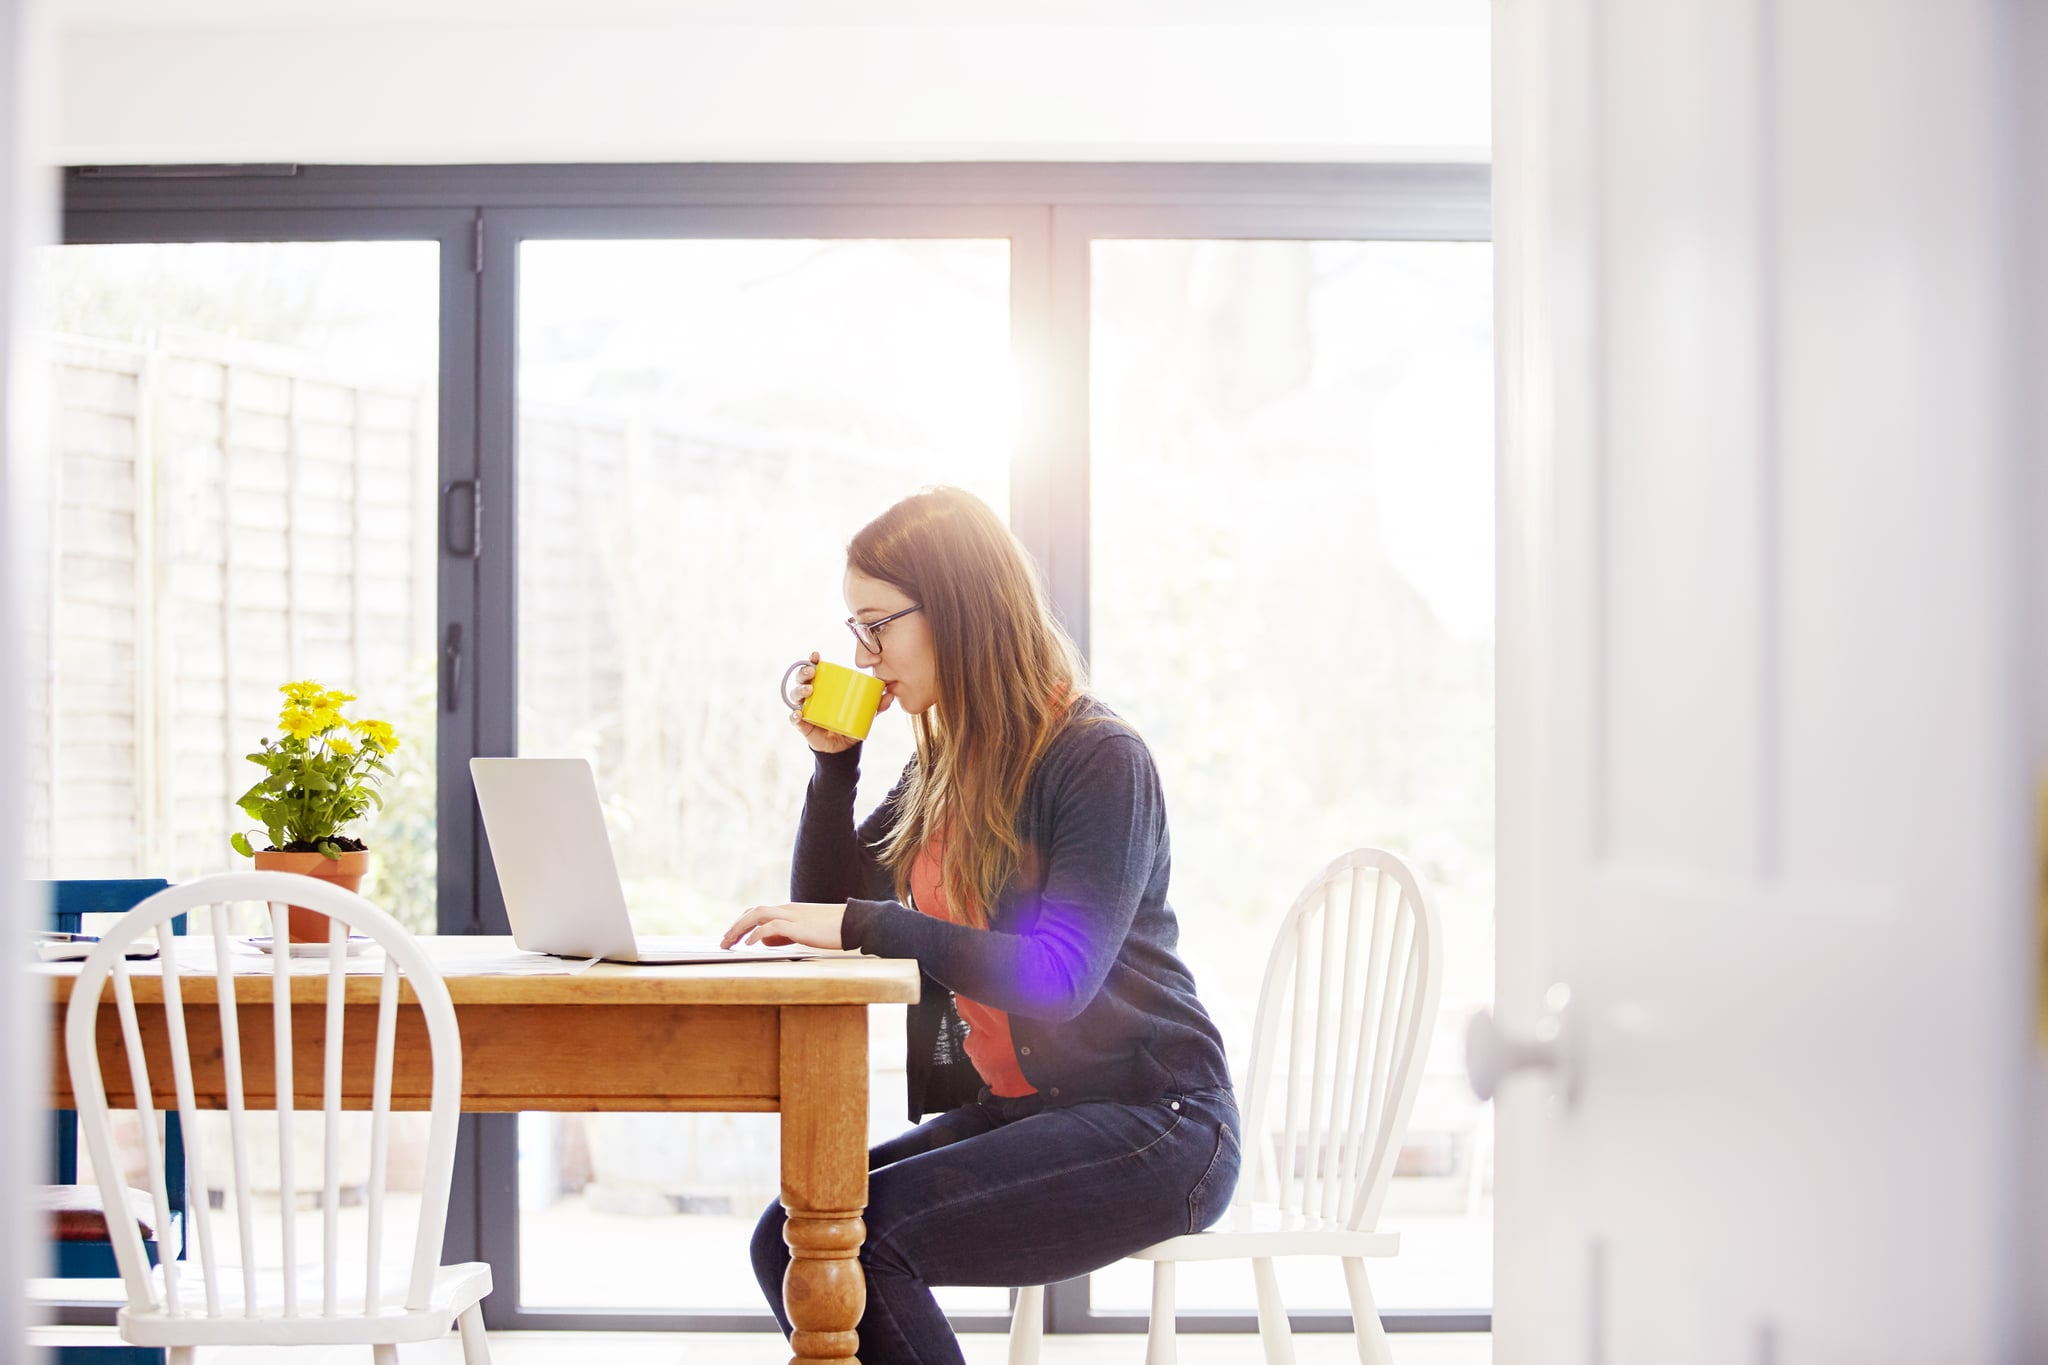 Easy Ways to Stay Focused While Working From Home